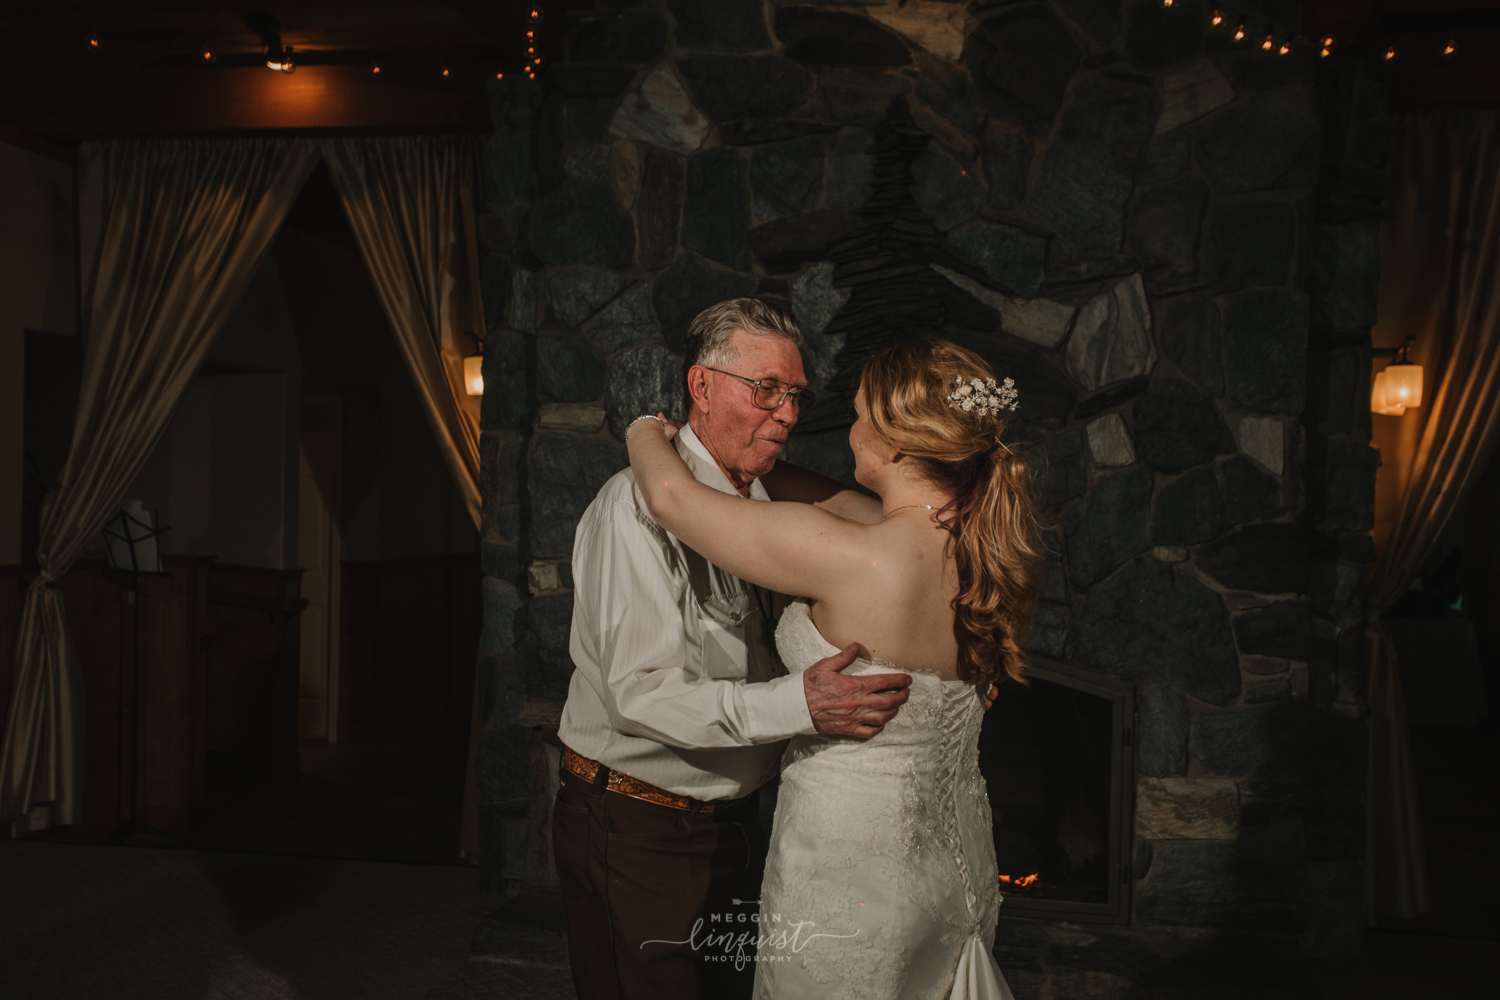 music-themed-winter-wedding-tannenbaum-event-center-reno-lake-tahoe-wedding-photographer-75.jpg